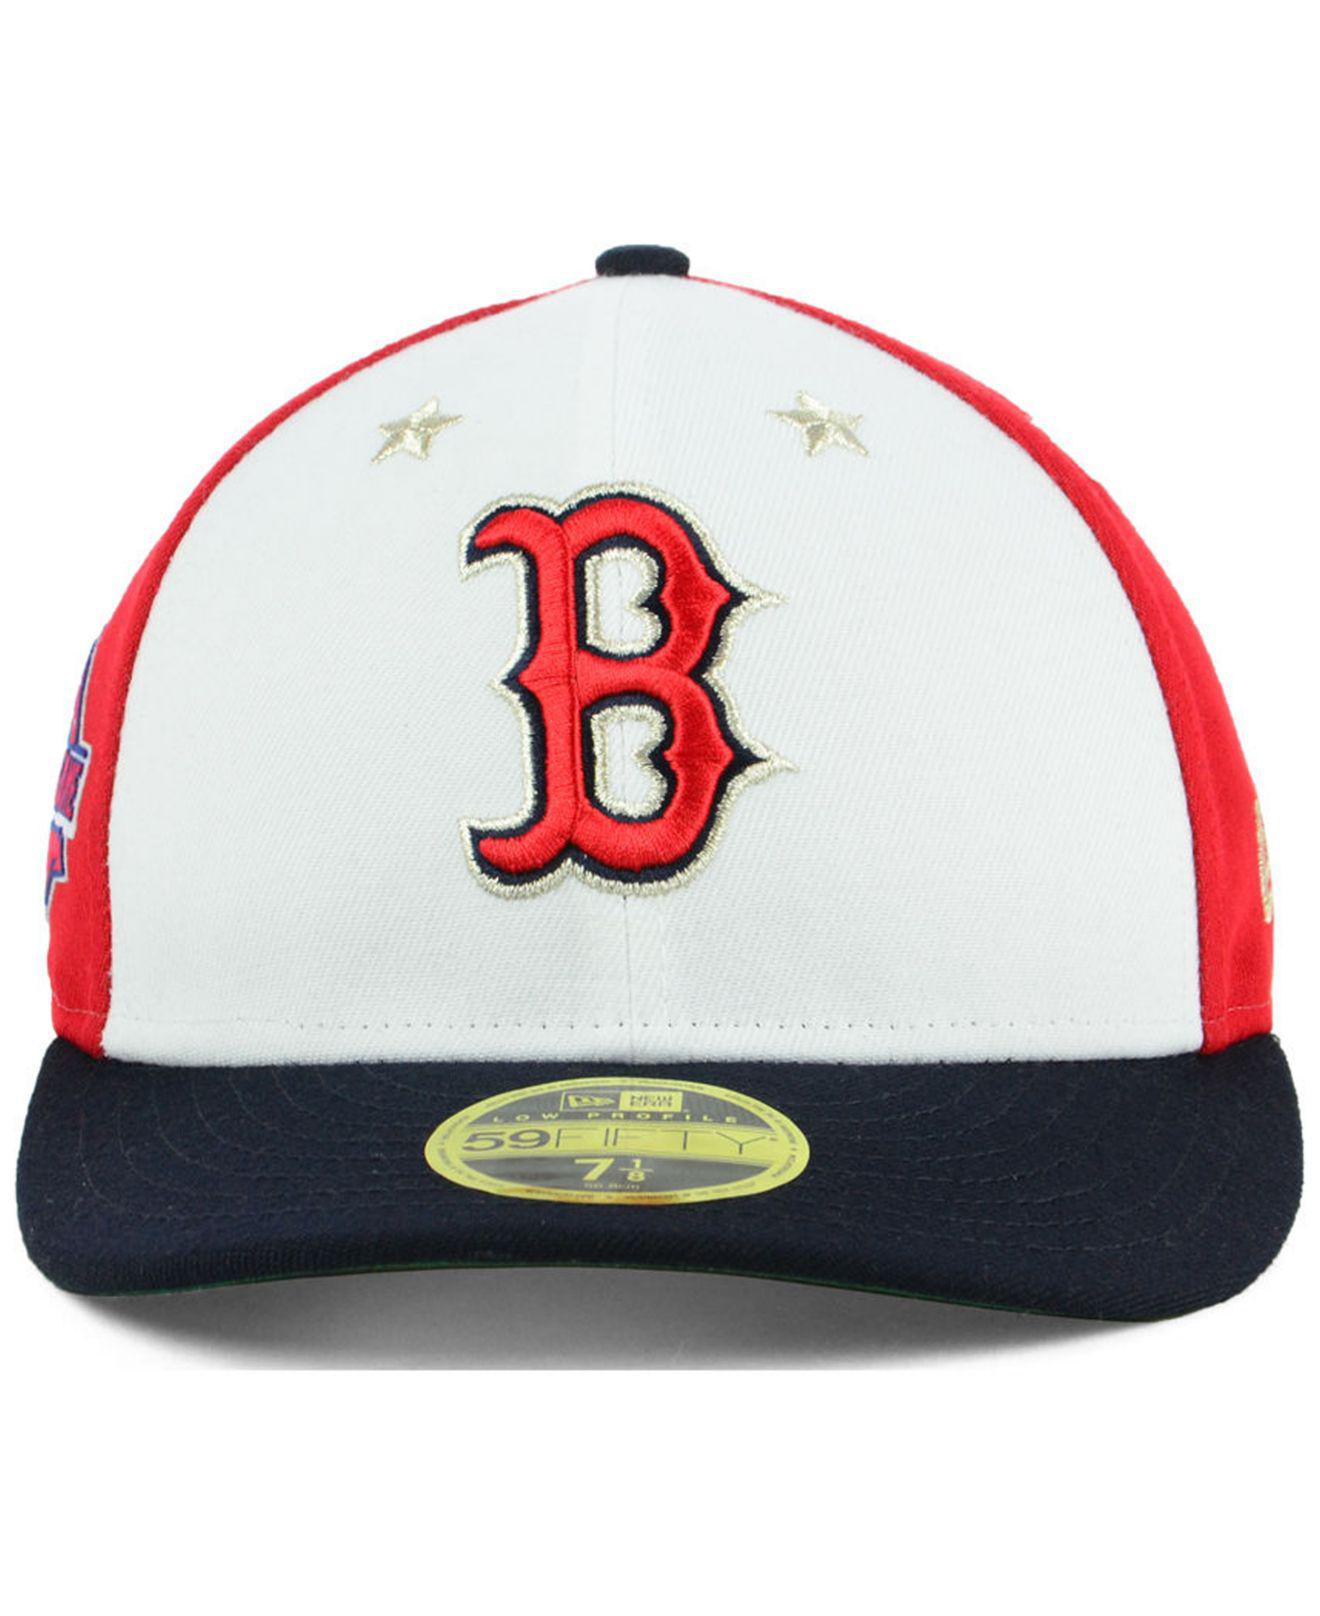 various colors 09a60 df49c KTZ Boston Red Sox All Star Game Patch Low Profile 59fifty Fitted ...